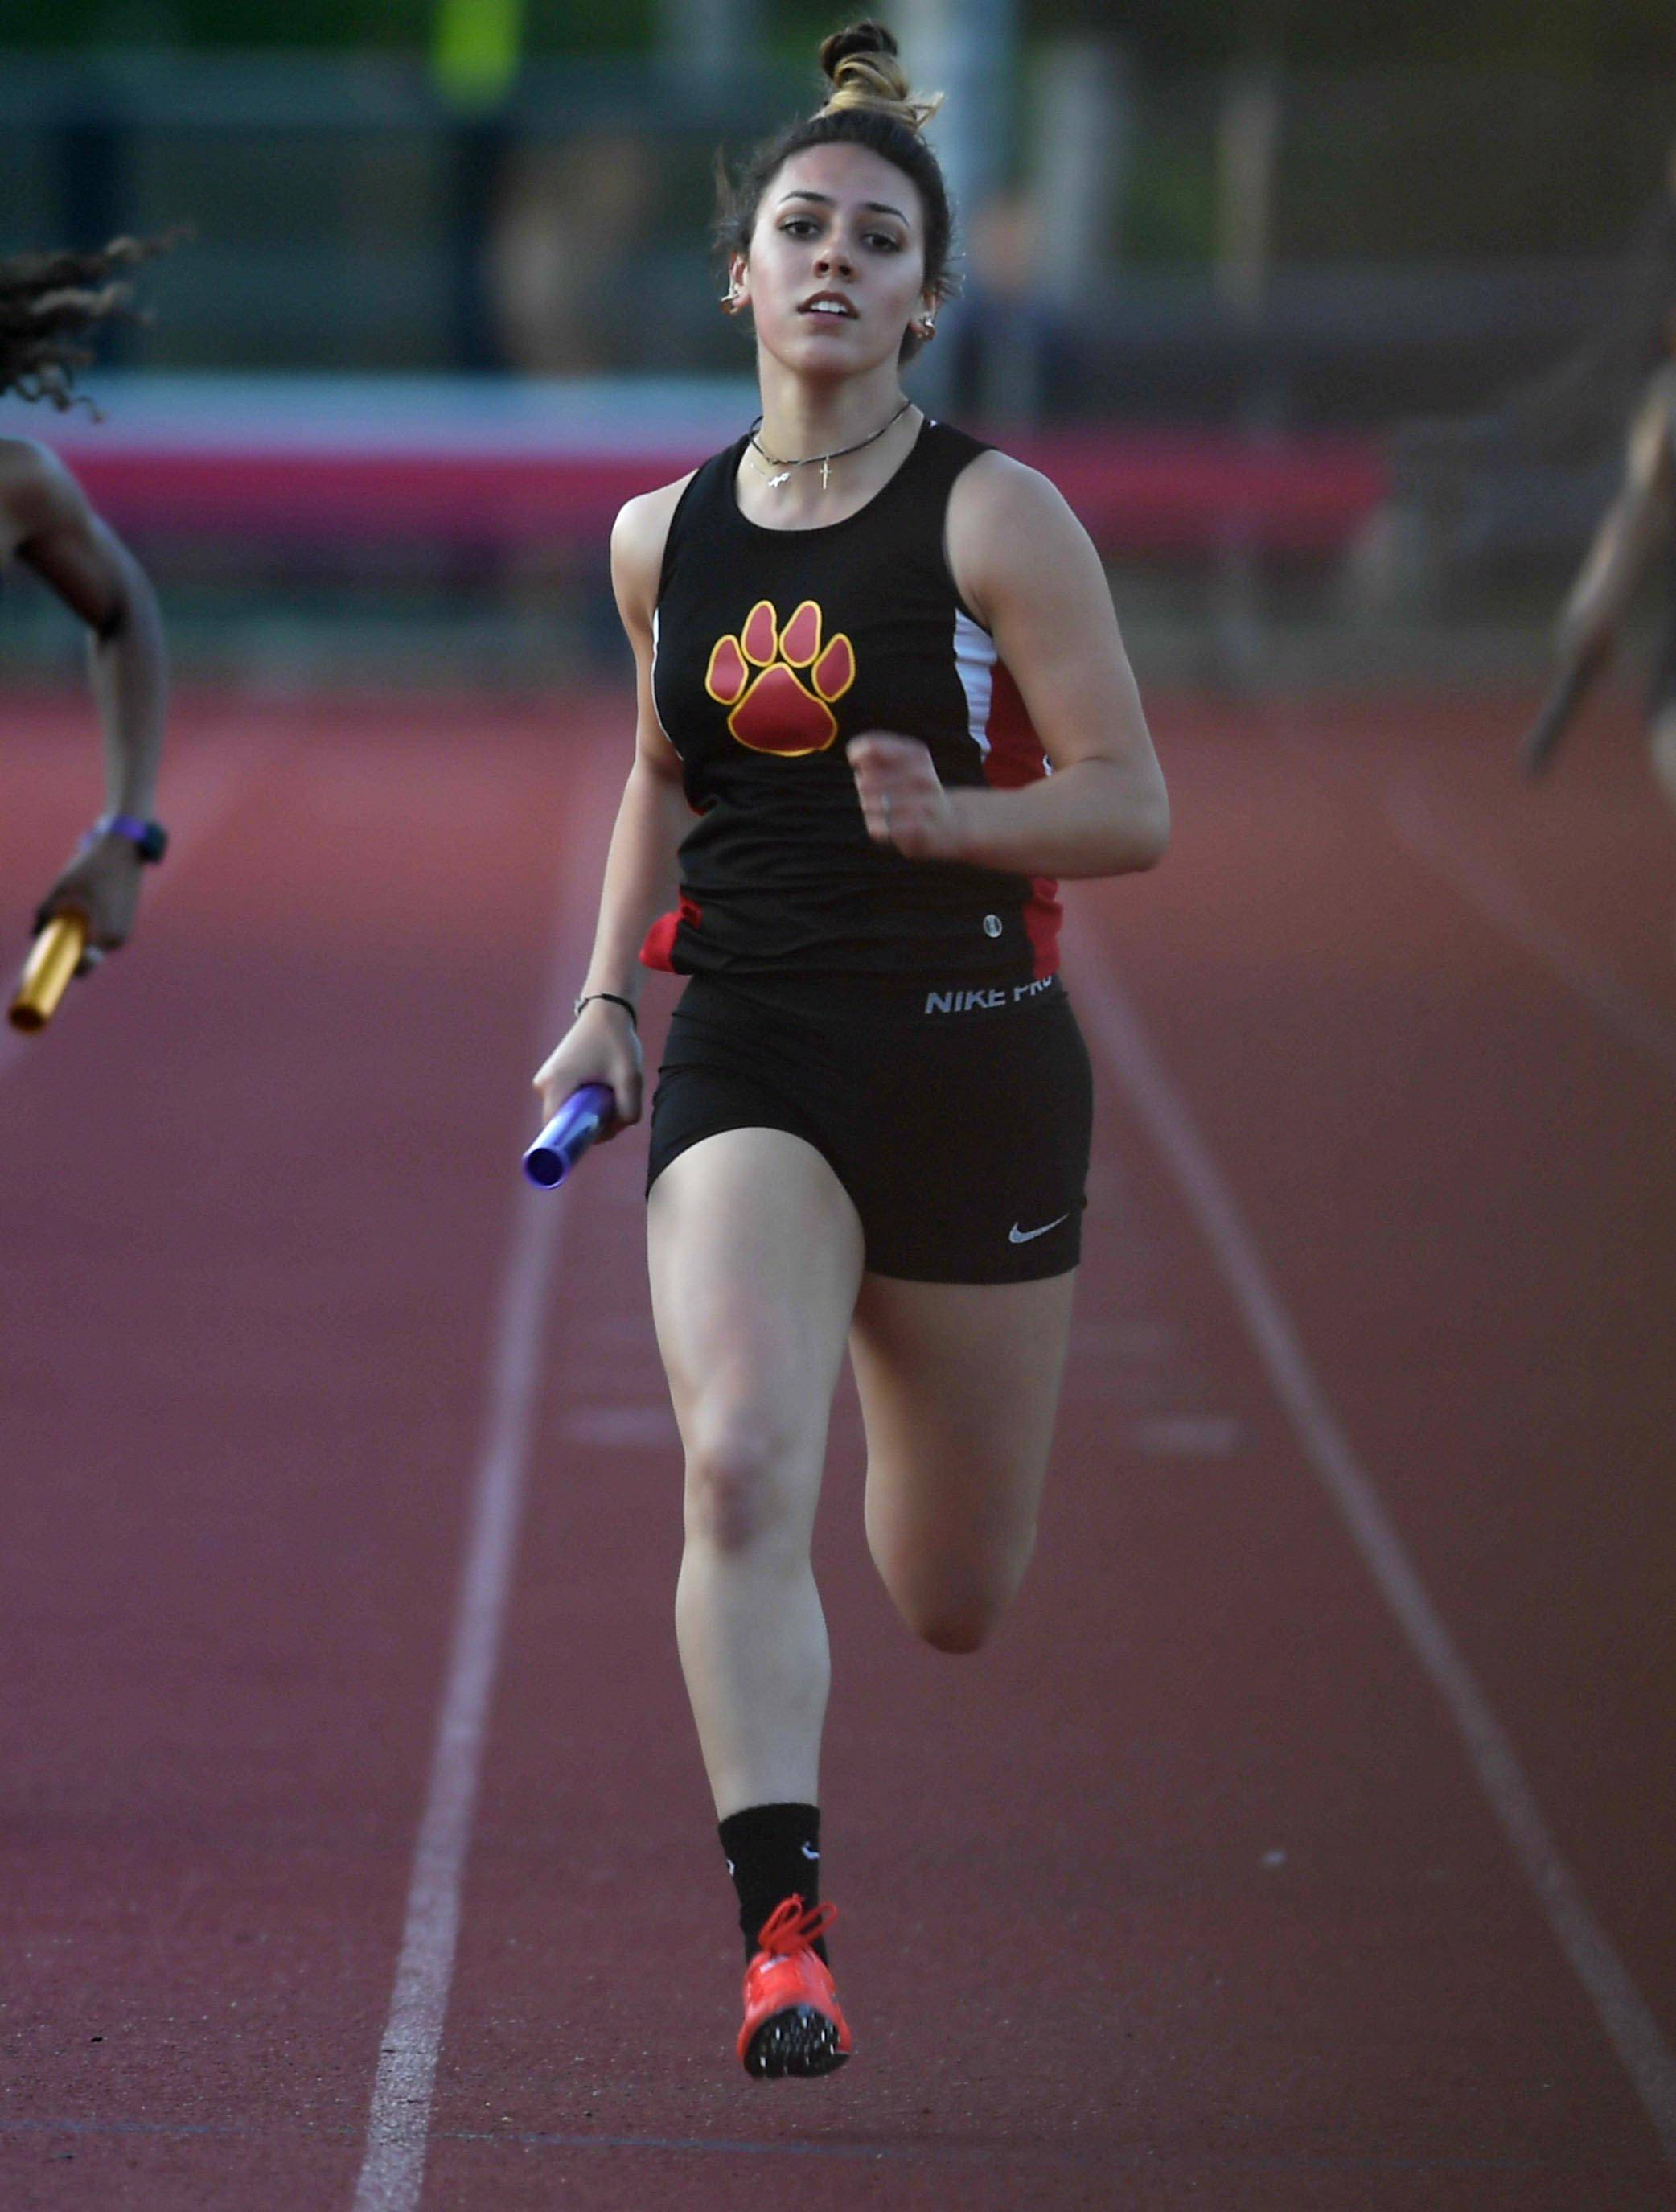 Batavia's Tori Ortiz finishes the 800 meter relay at the West Aurora girls sectional track meet last week.